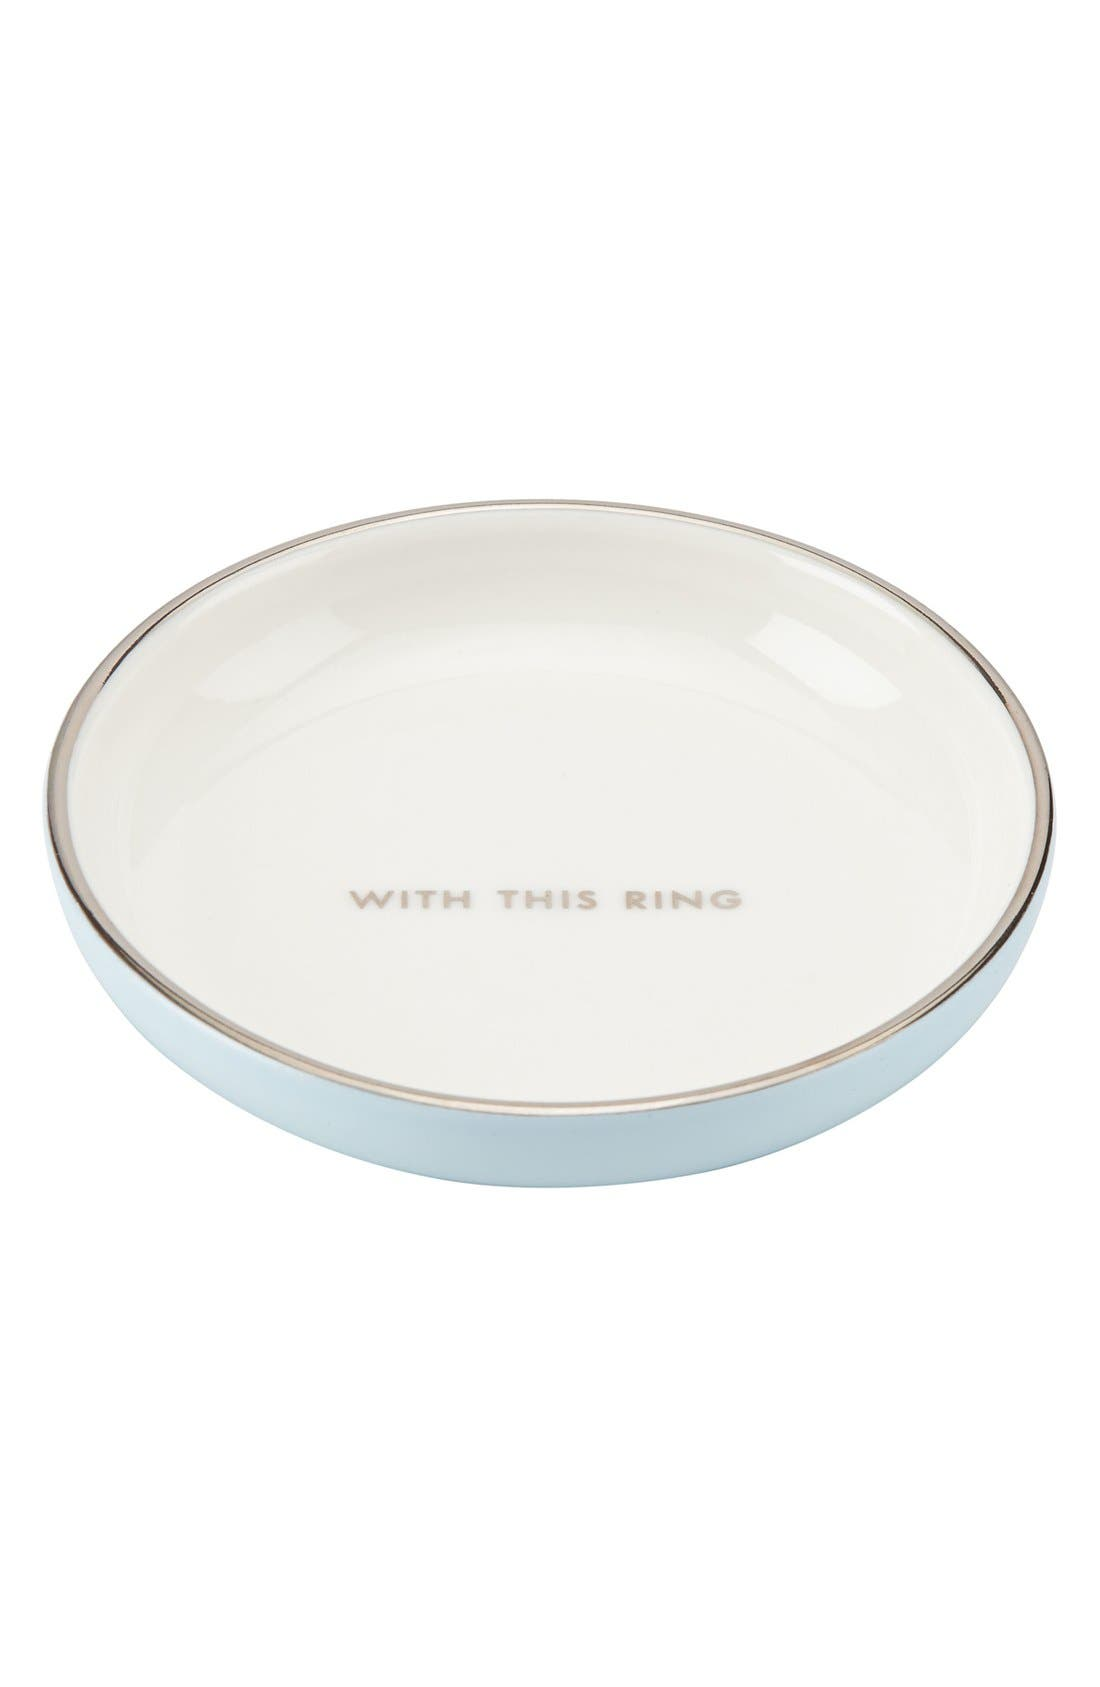 Alternate Image 1 Selected - kate spade 'take the cake' ring dish